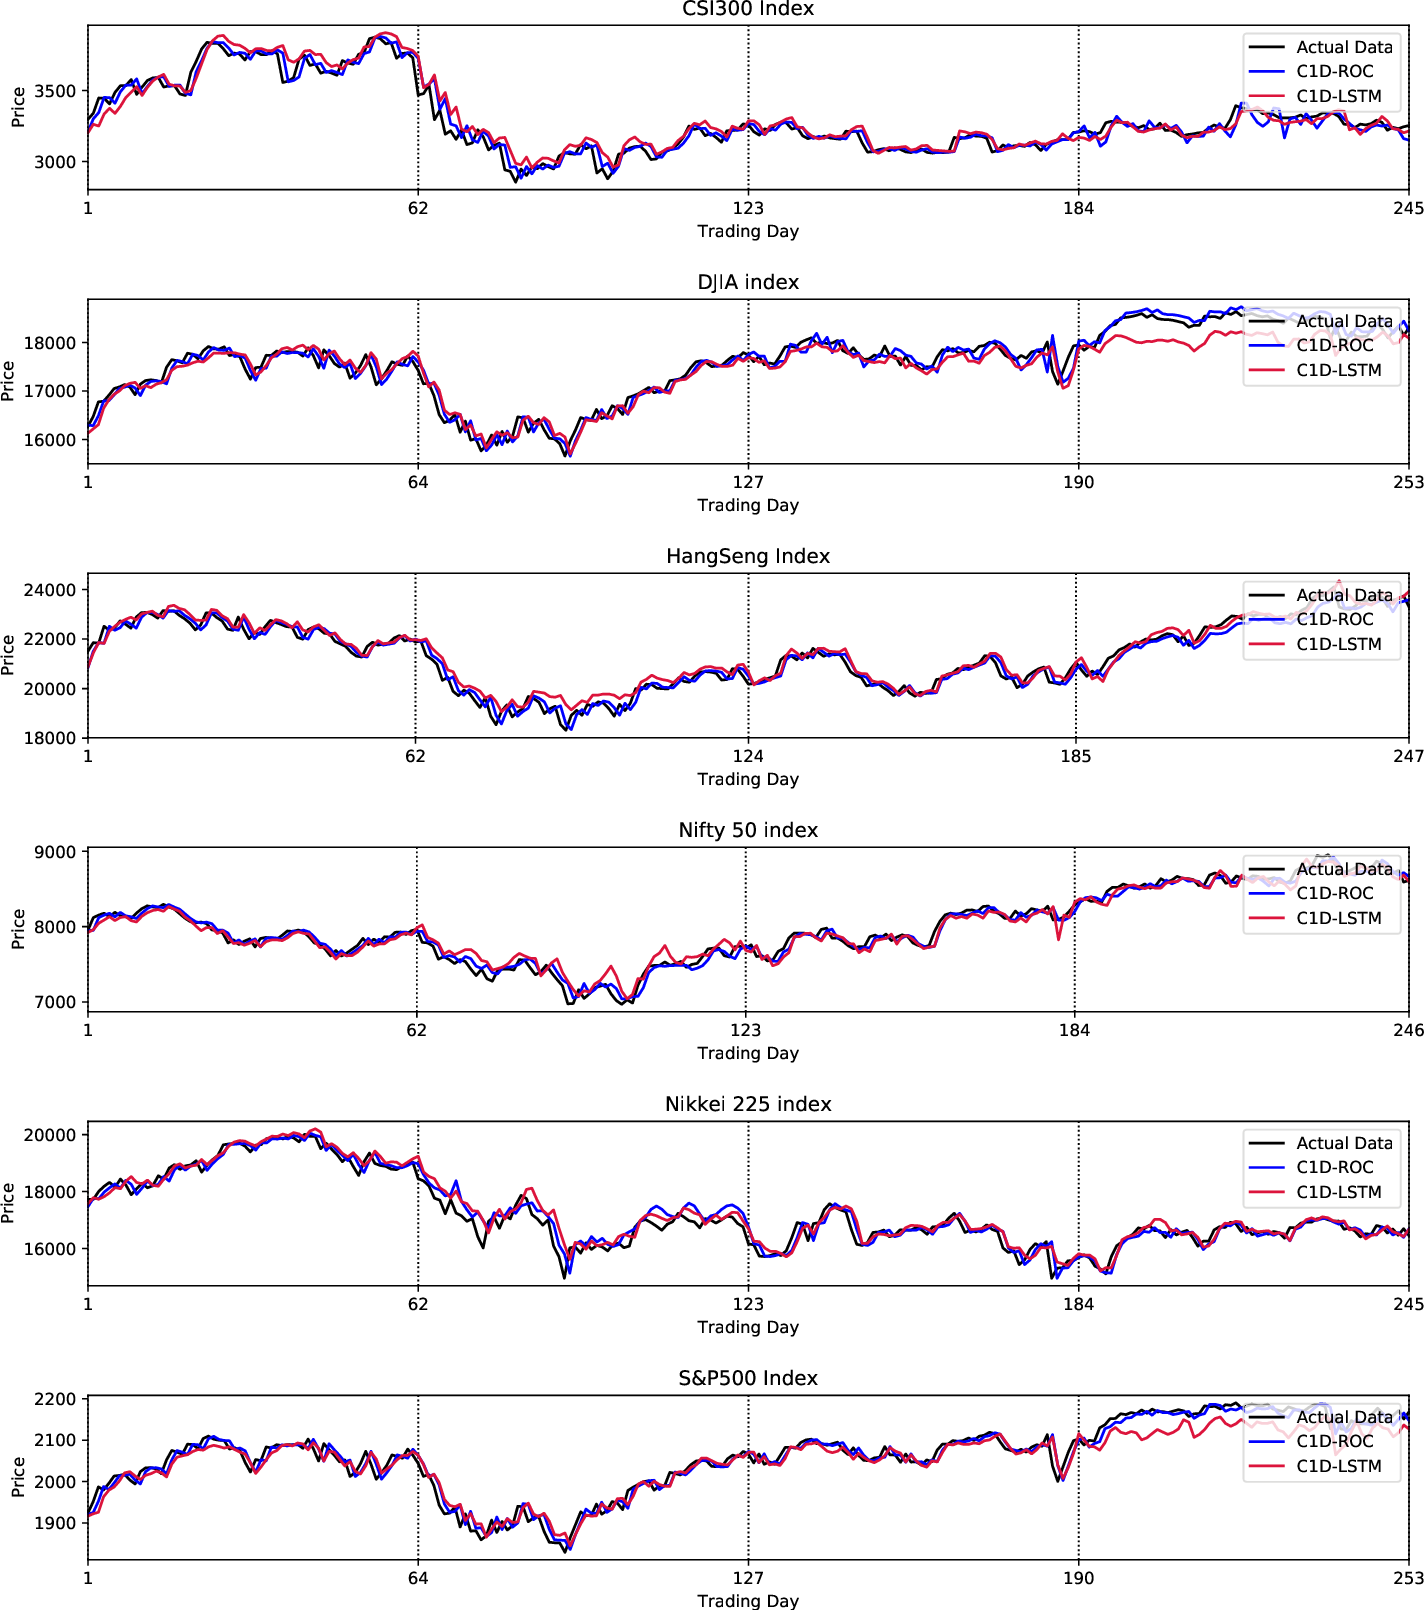 Figure 4 for Stock Prices Prediction using Deep Learning Models